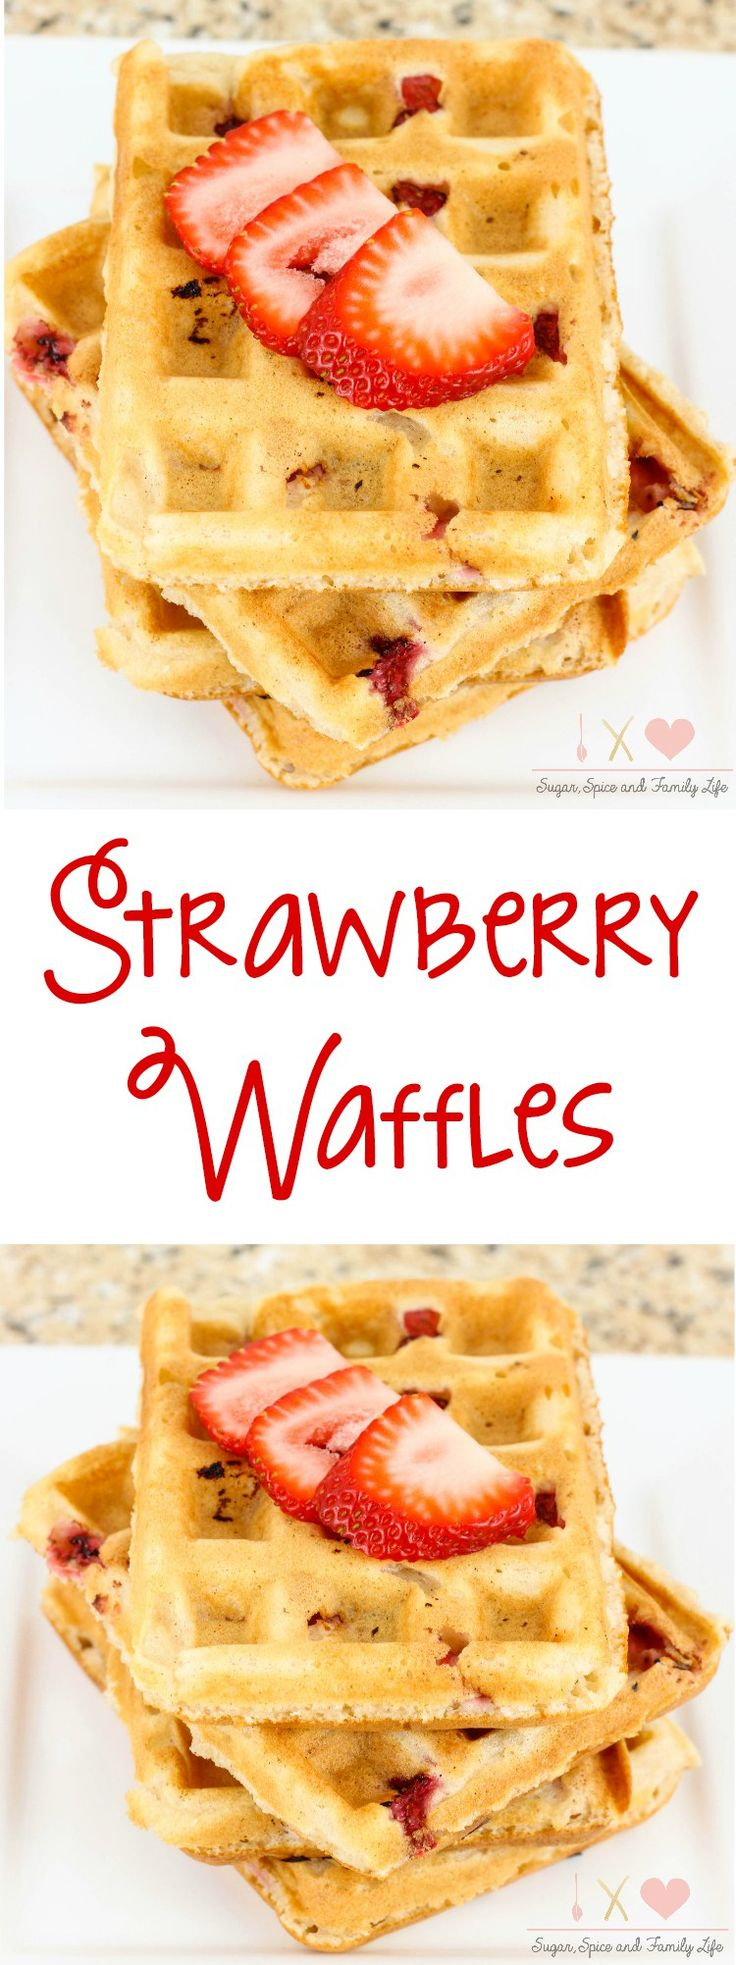 Strawberry Waffles are a delicious breakfast especially for strawberry lovers. - Strawberry Waffles Recipe from Sugar, Spice and Family Life